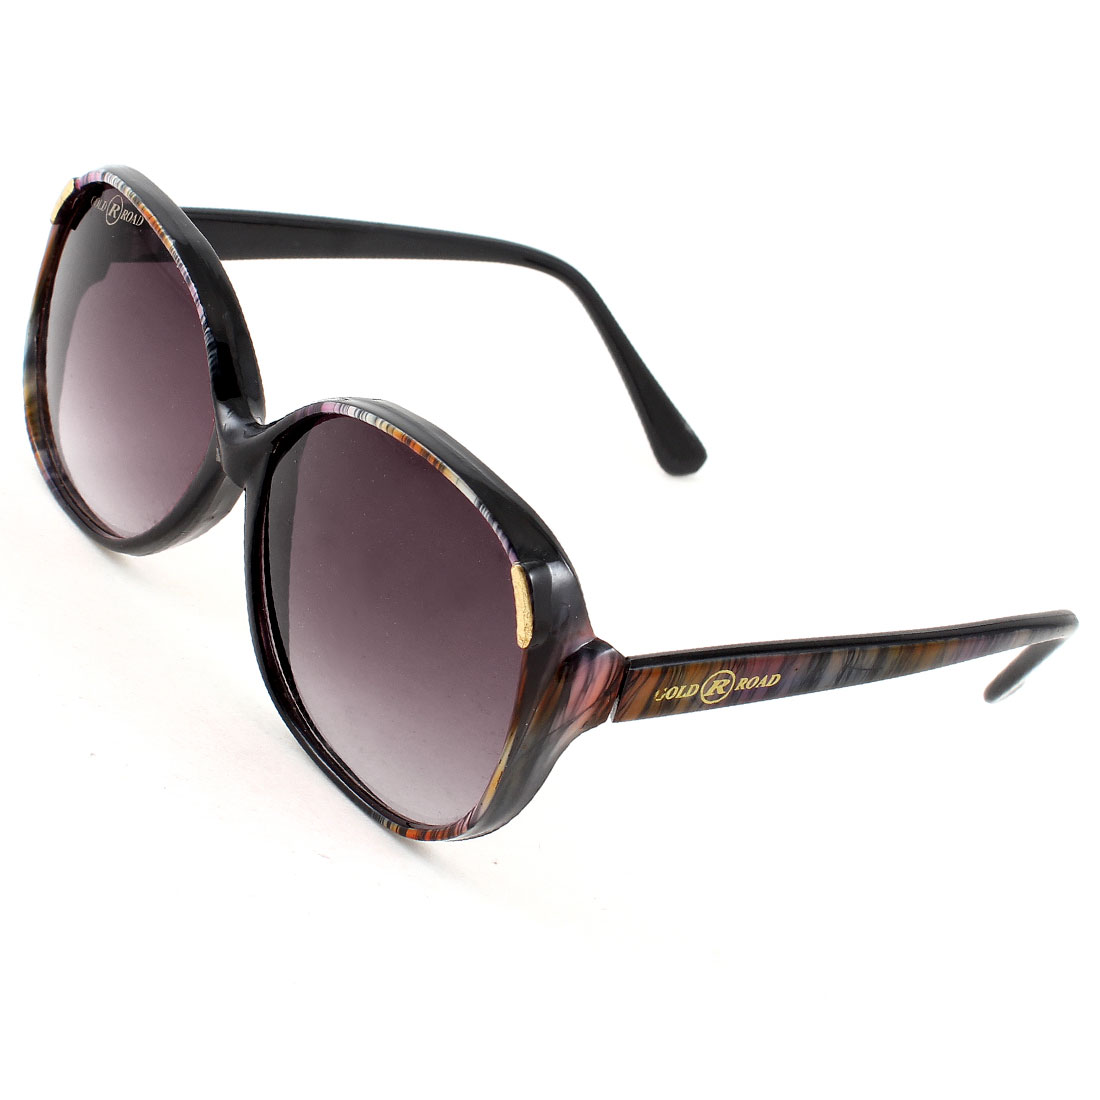 Single Bridge Dark Magenta Lens Striped Full Rim Sunglasses Glasses for Women